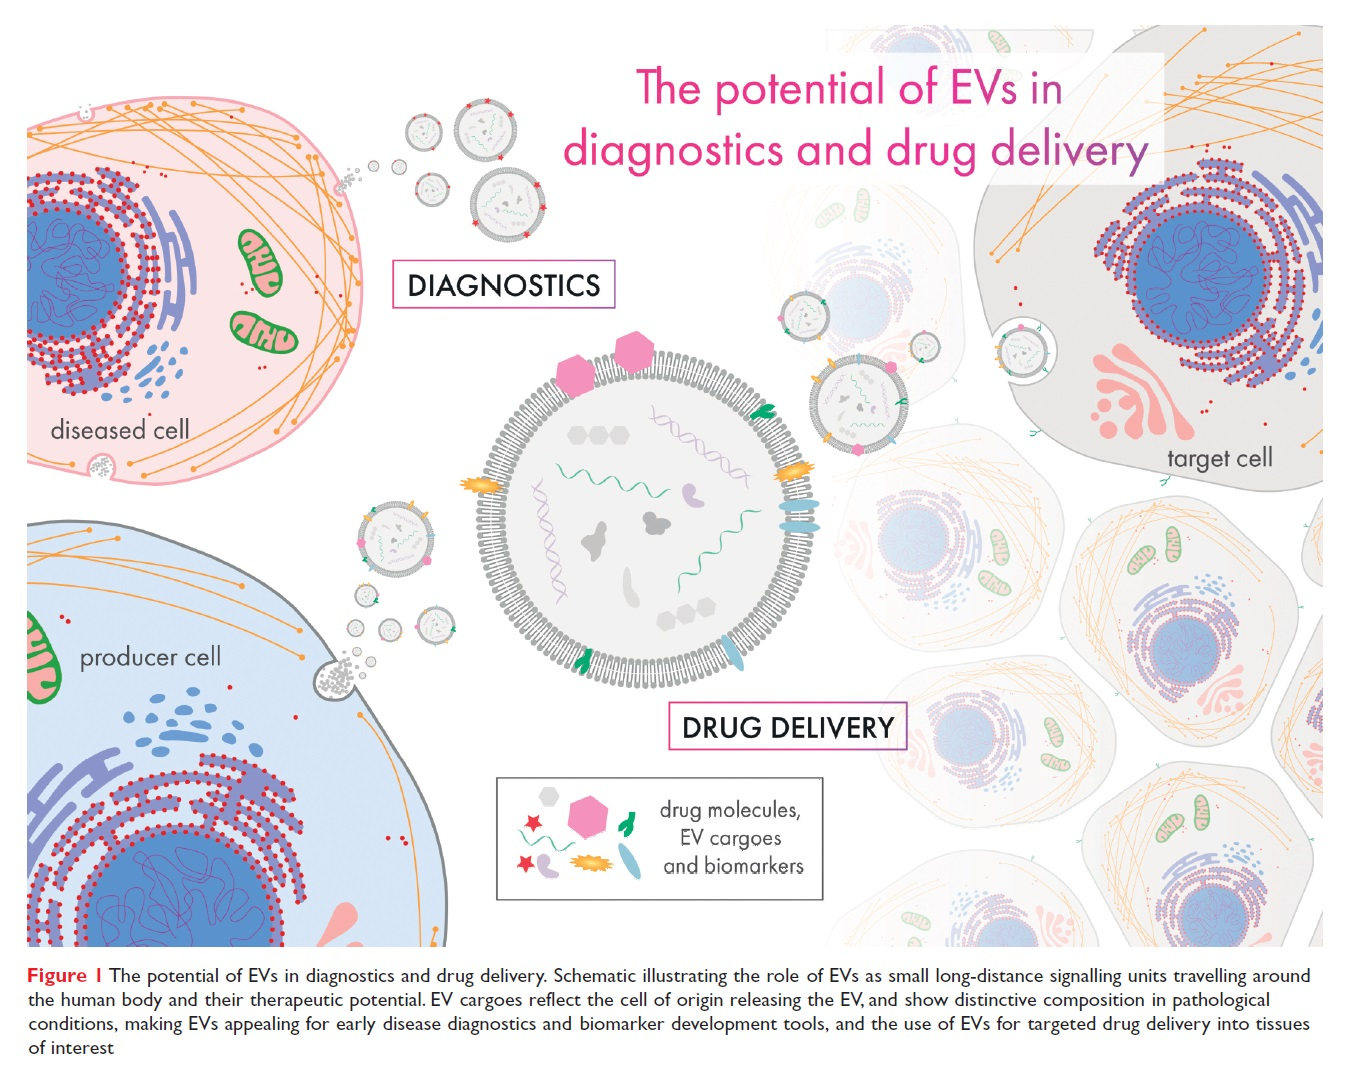 Figure 1 The potential of EVs in diagnostics and drug delivery